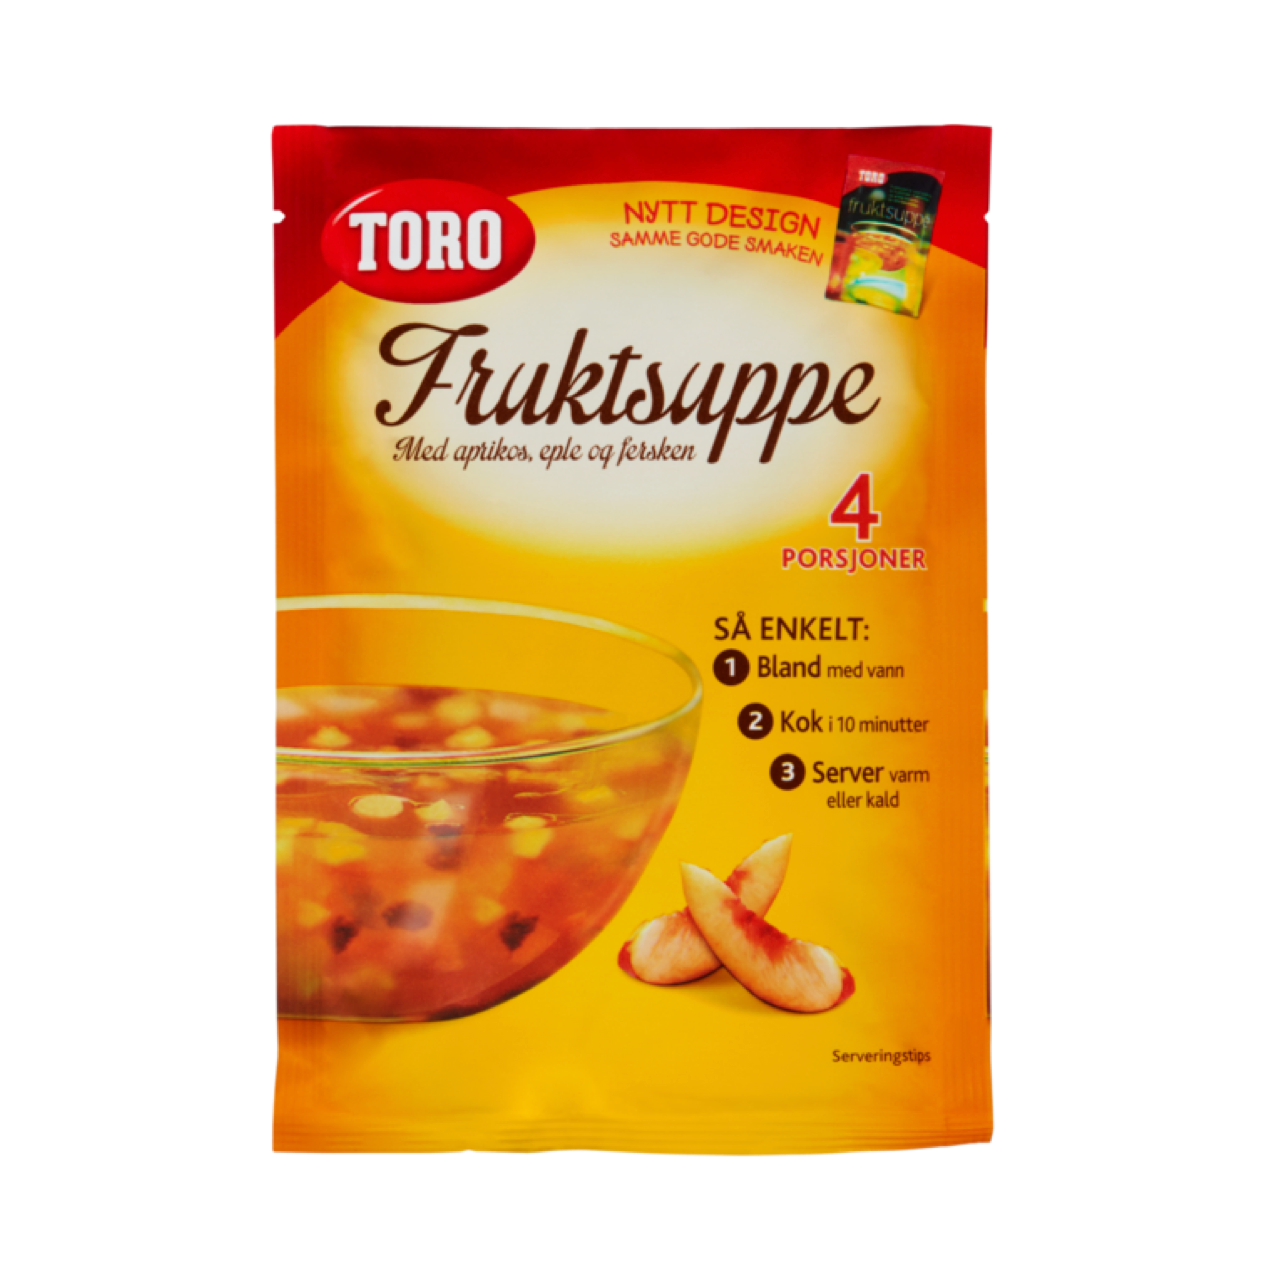 Toro Fruksuppe (Fruit Soup)